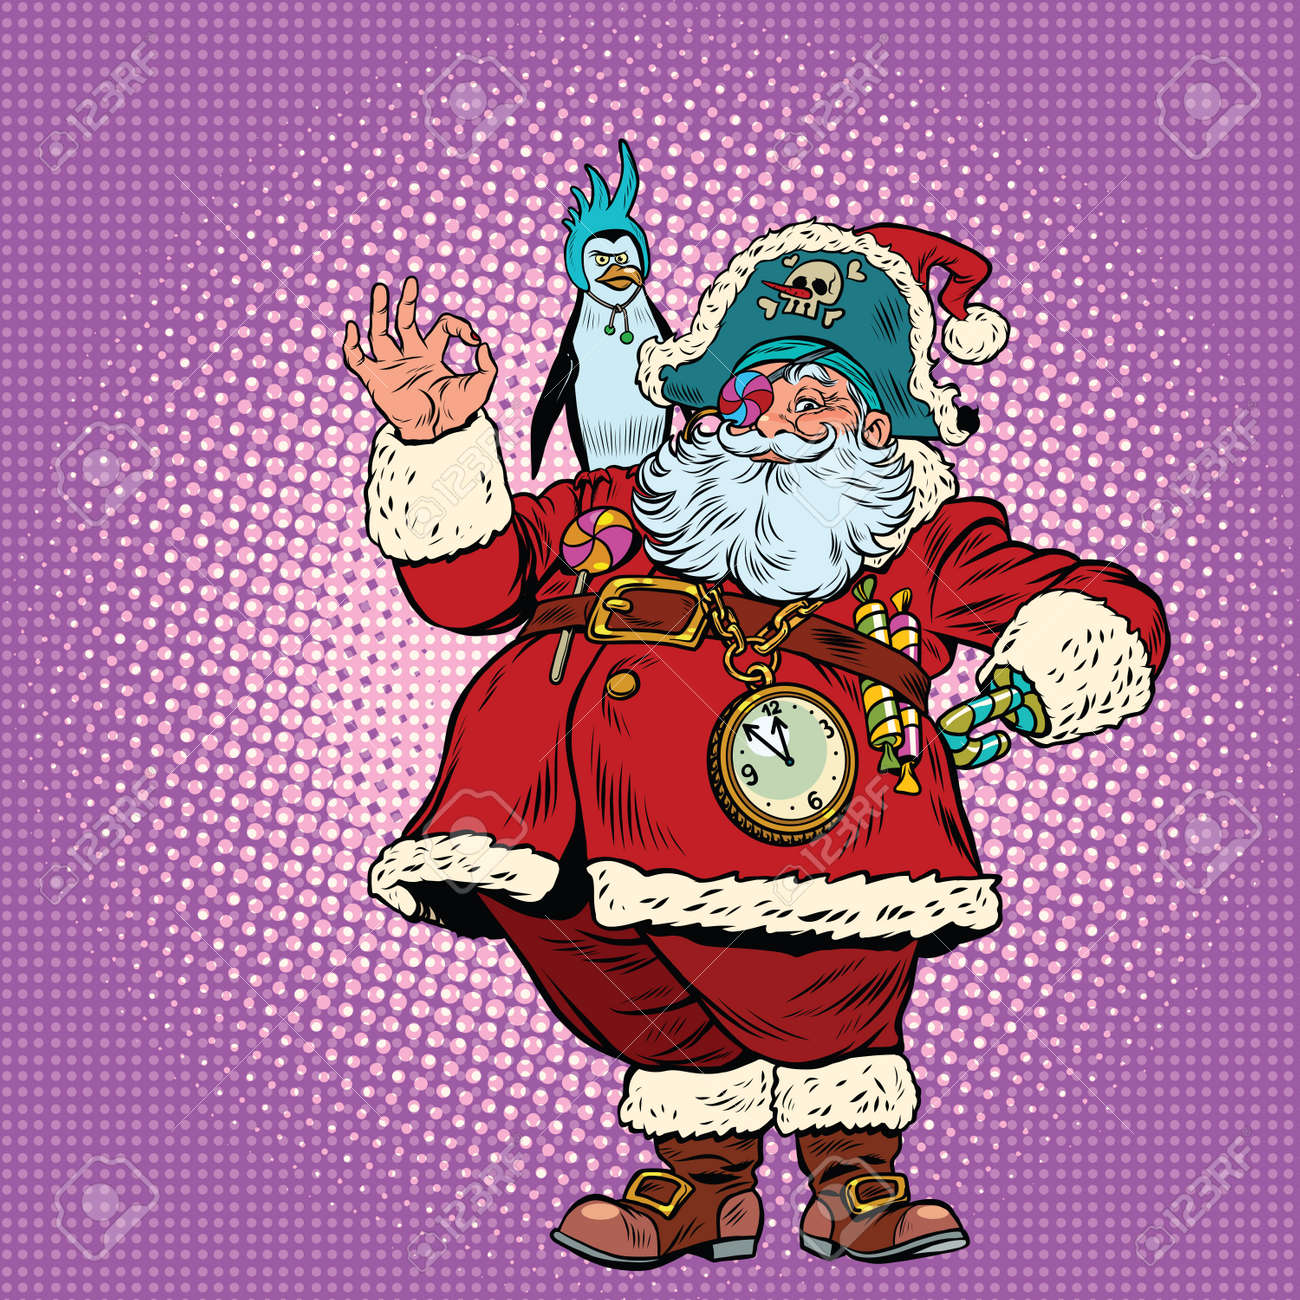 santa claus pirate and penguin okay gesture pop art retro vector illustration new year